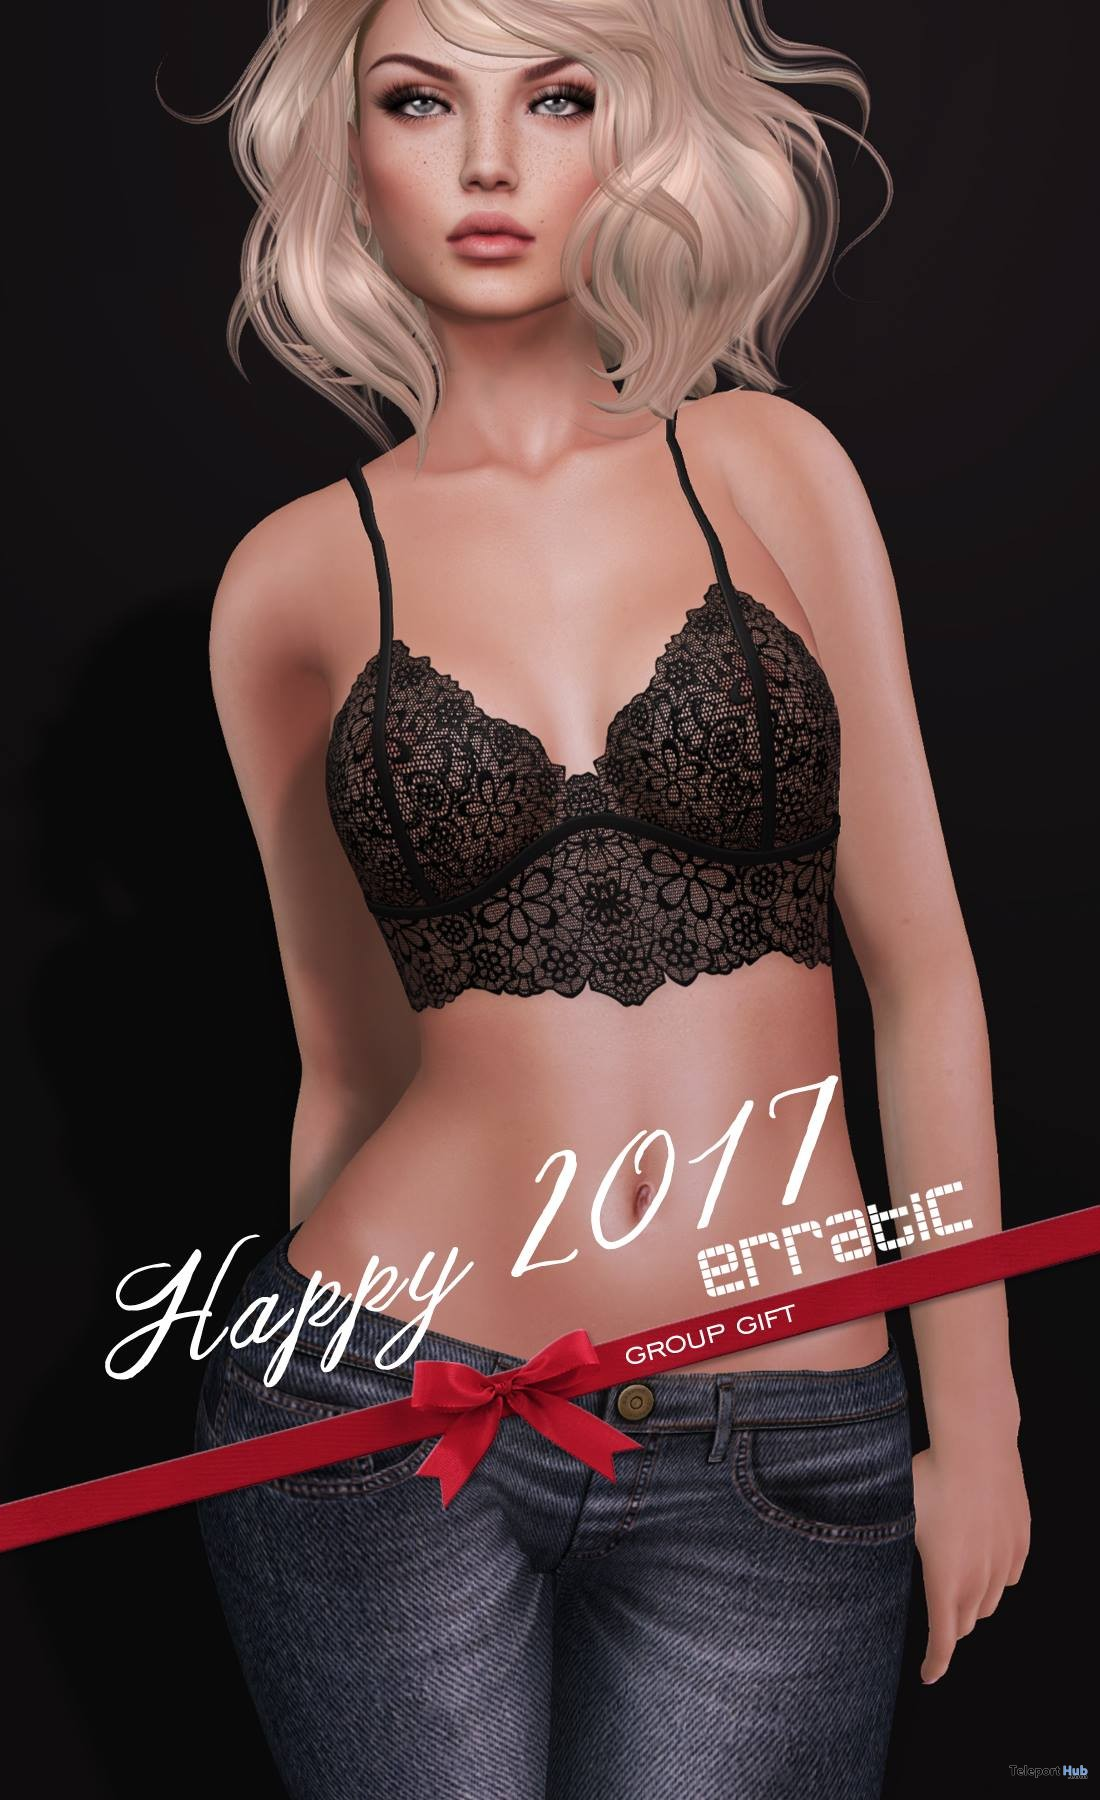 Bralette 8 Colors For Maitreya Mesh Body Holiday 2017 Group Gift by erratic - Teleport Hub - teleporthub.com